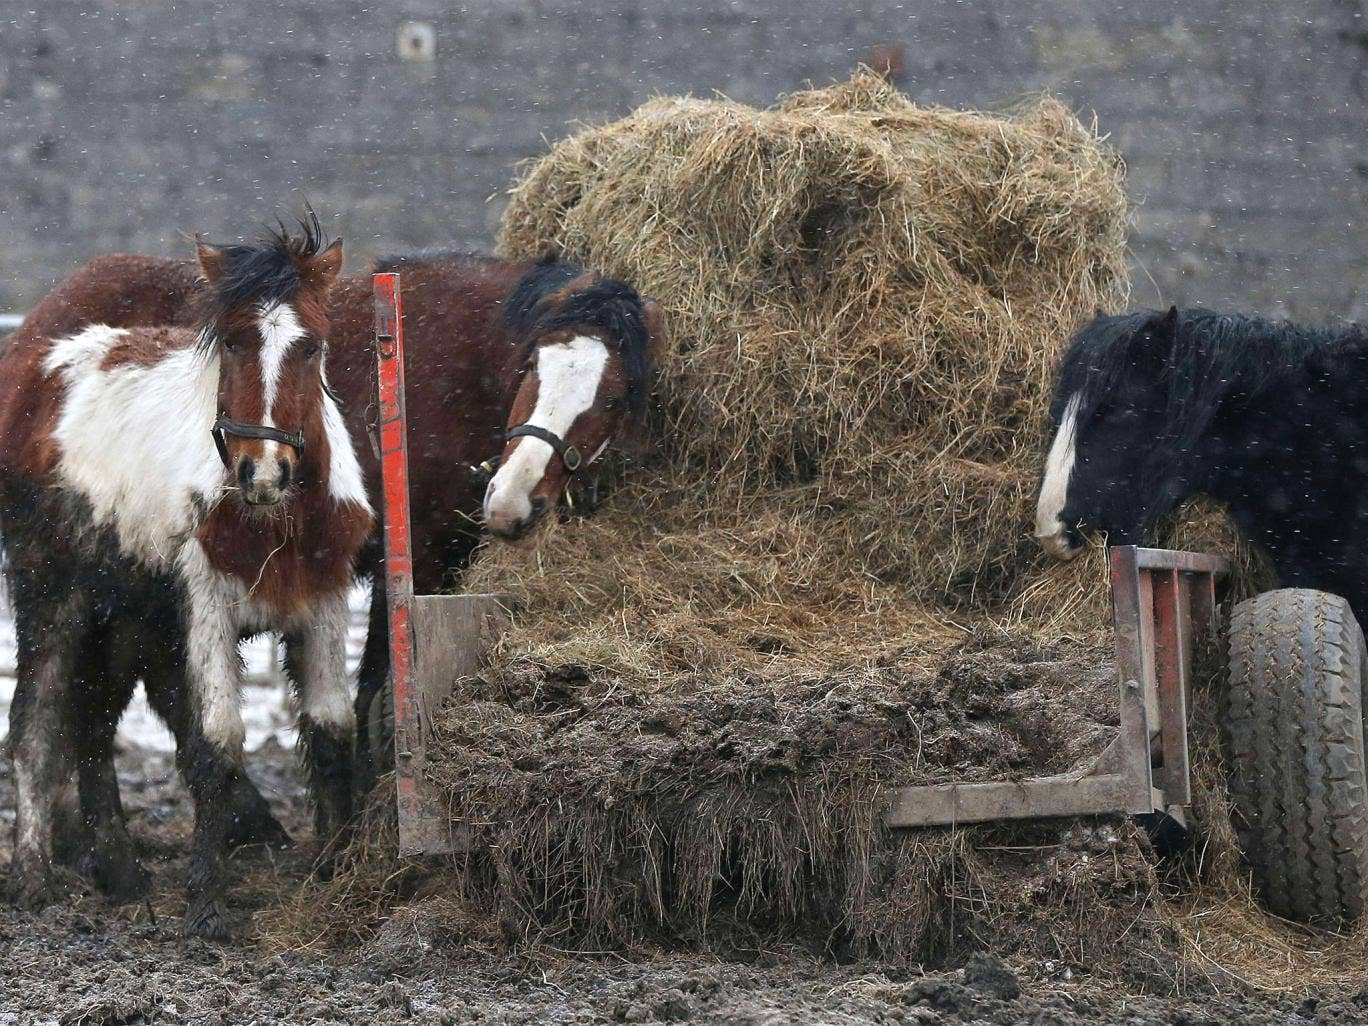 Horses are pictured in a field beside the Peter Boddy slaughterhouse in Todmorden, north-west England